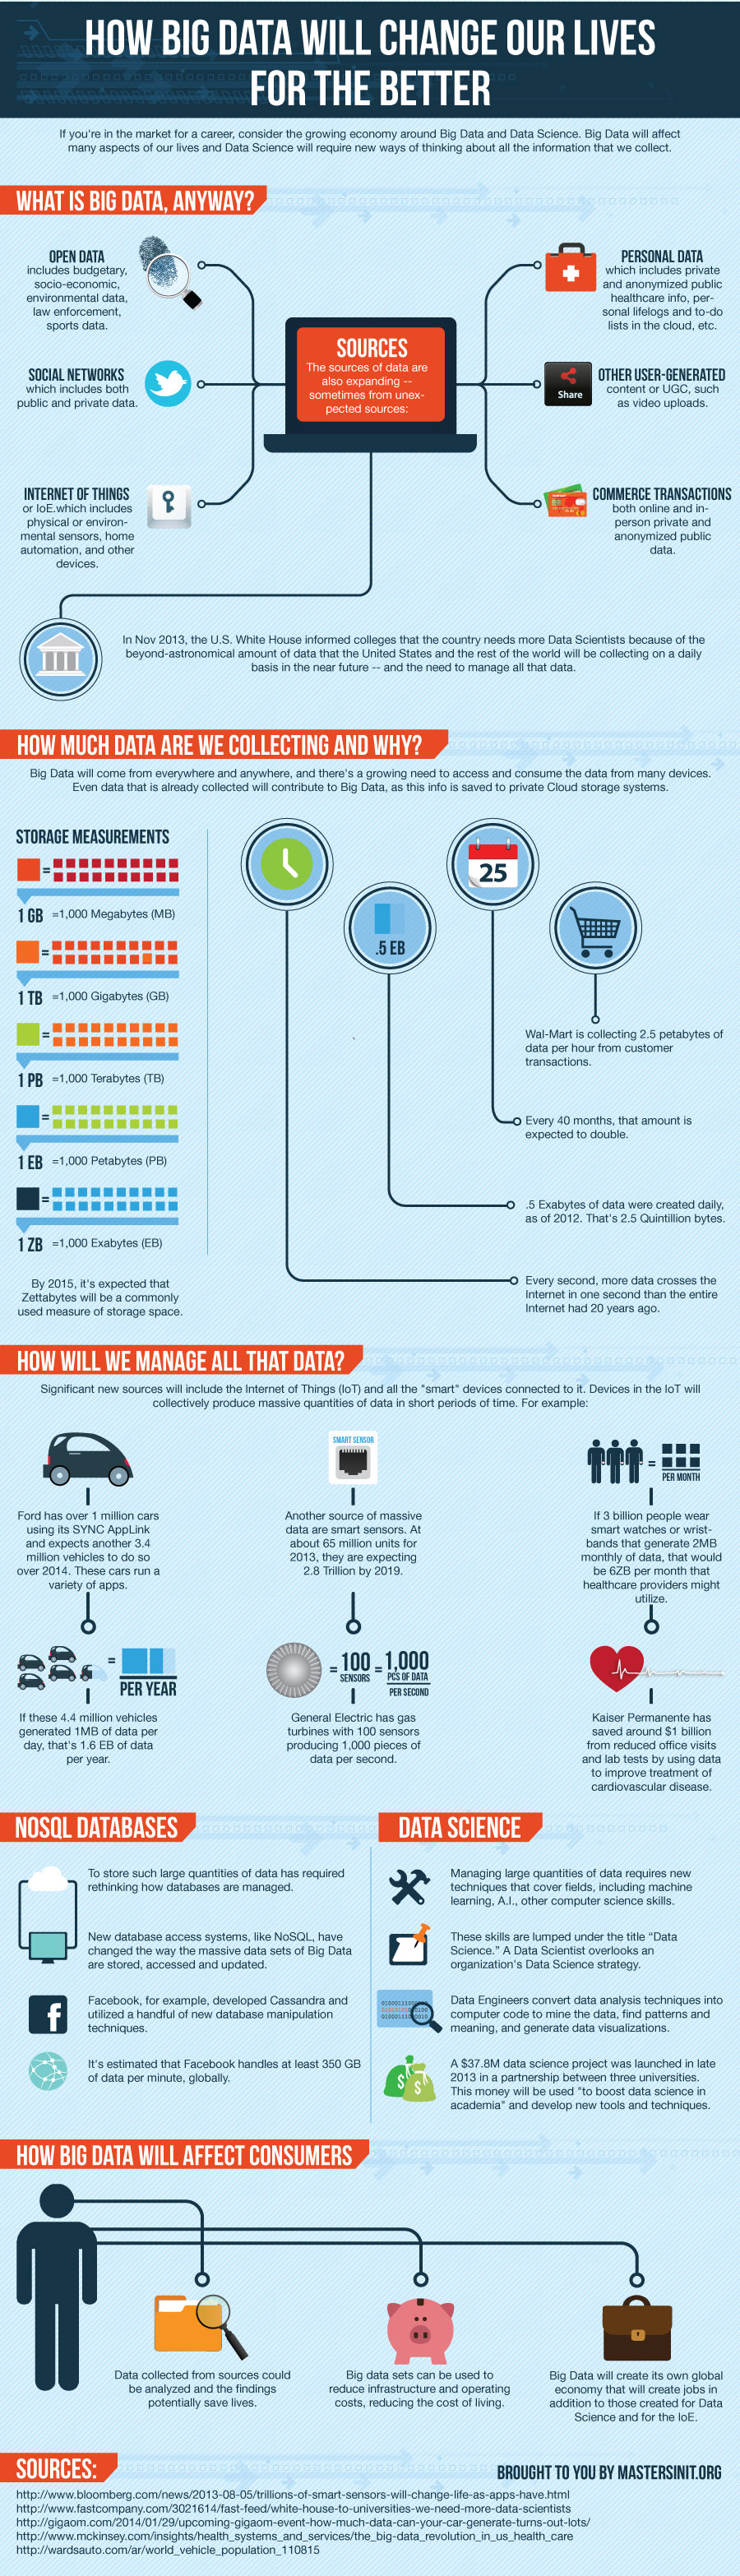 How Big Data Will Change Our Lives For The Better - infographic